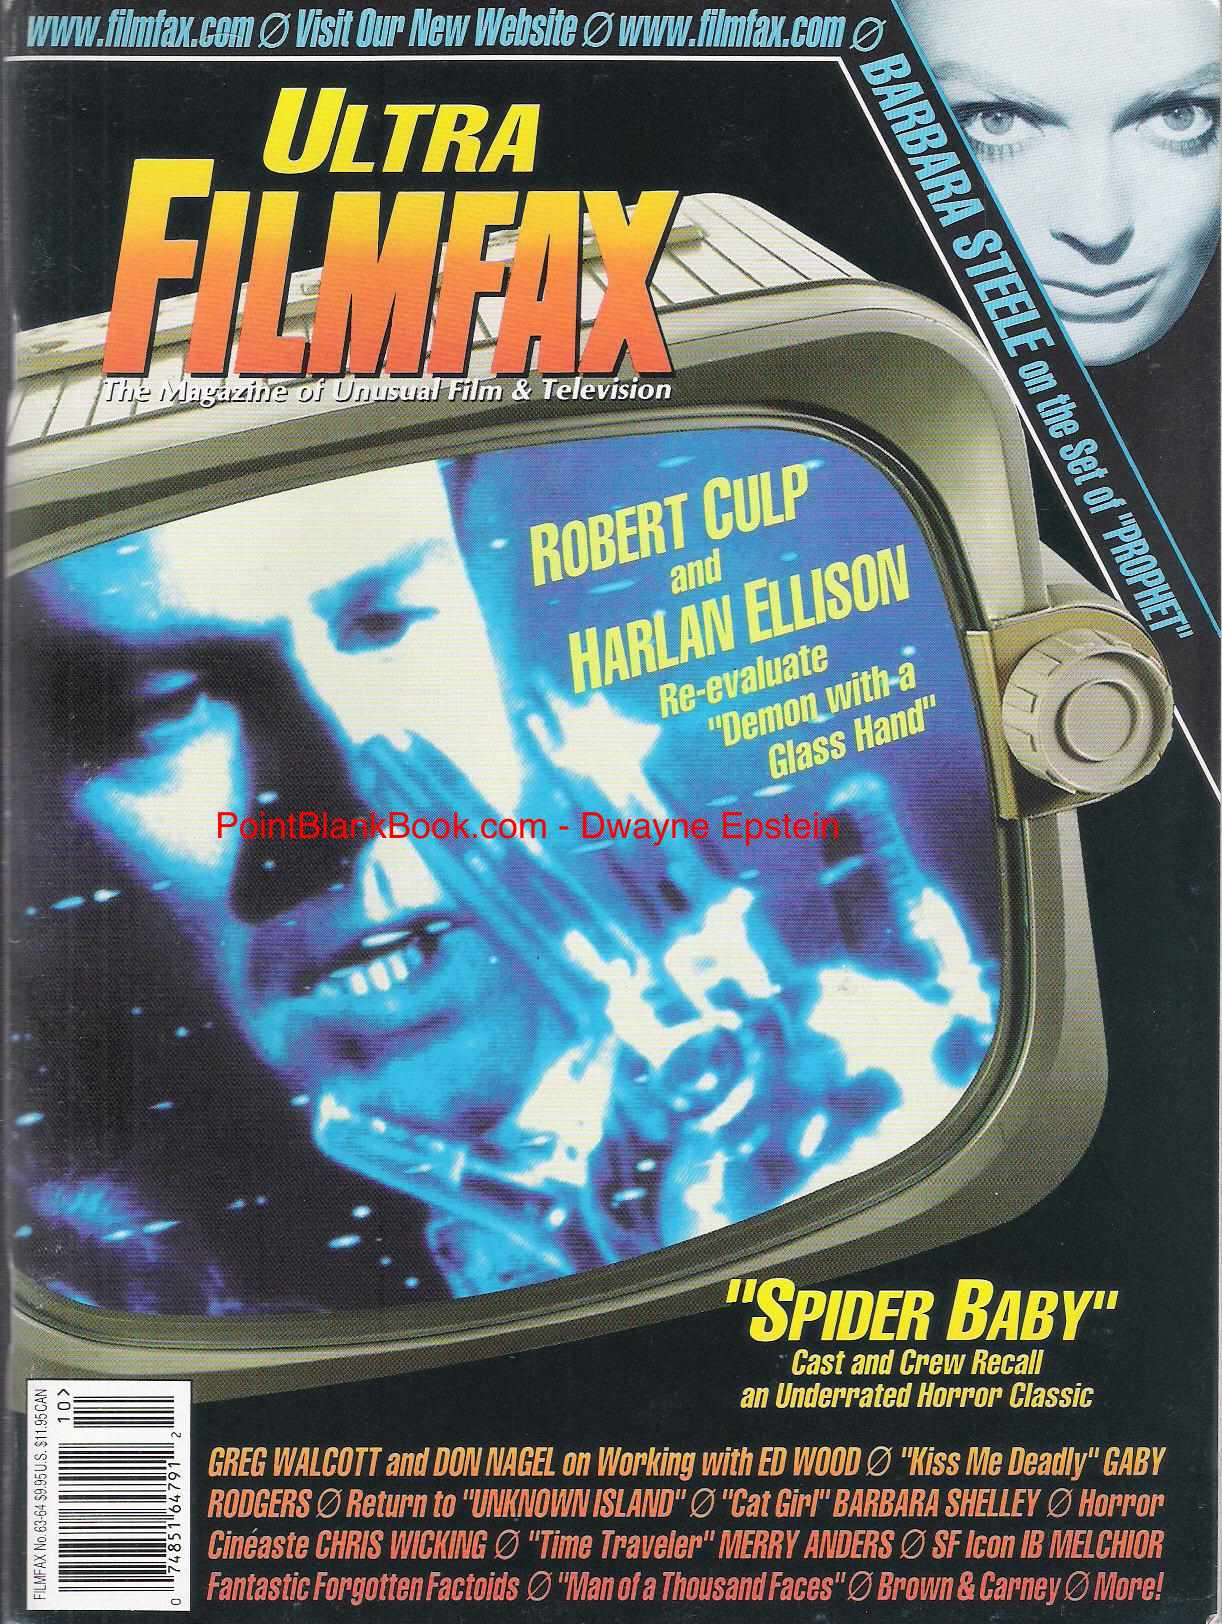 Cover of Filmfax featuring my Gregory Walcott inteview.